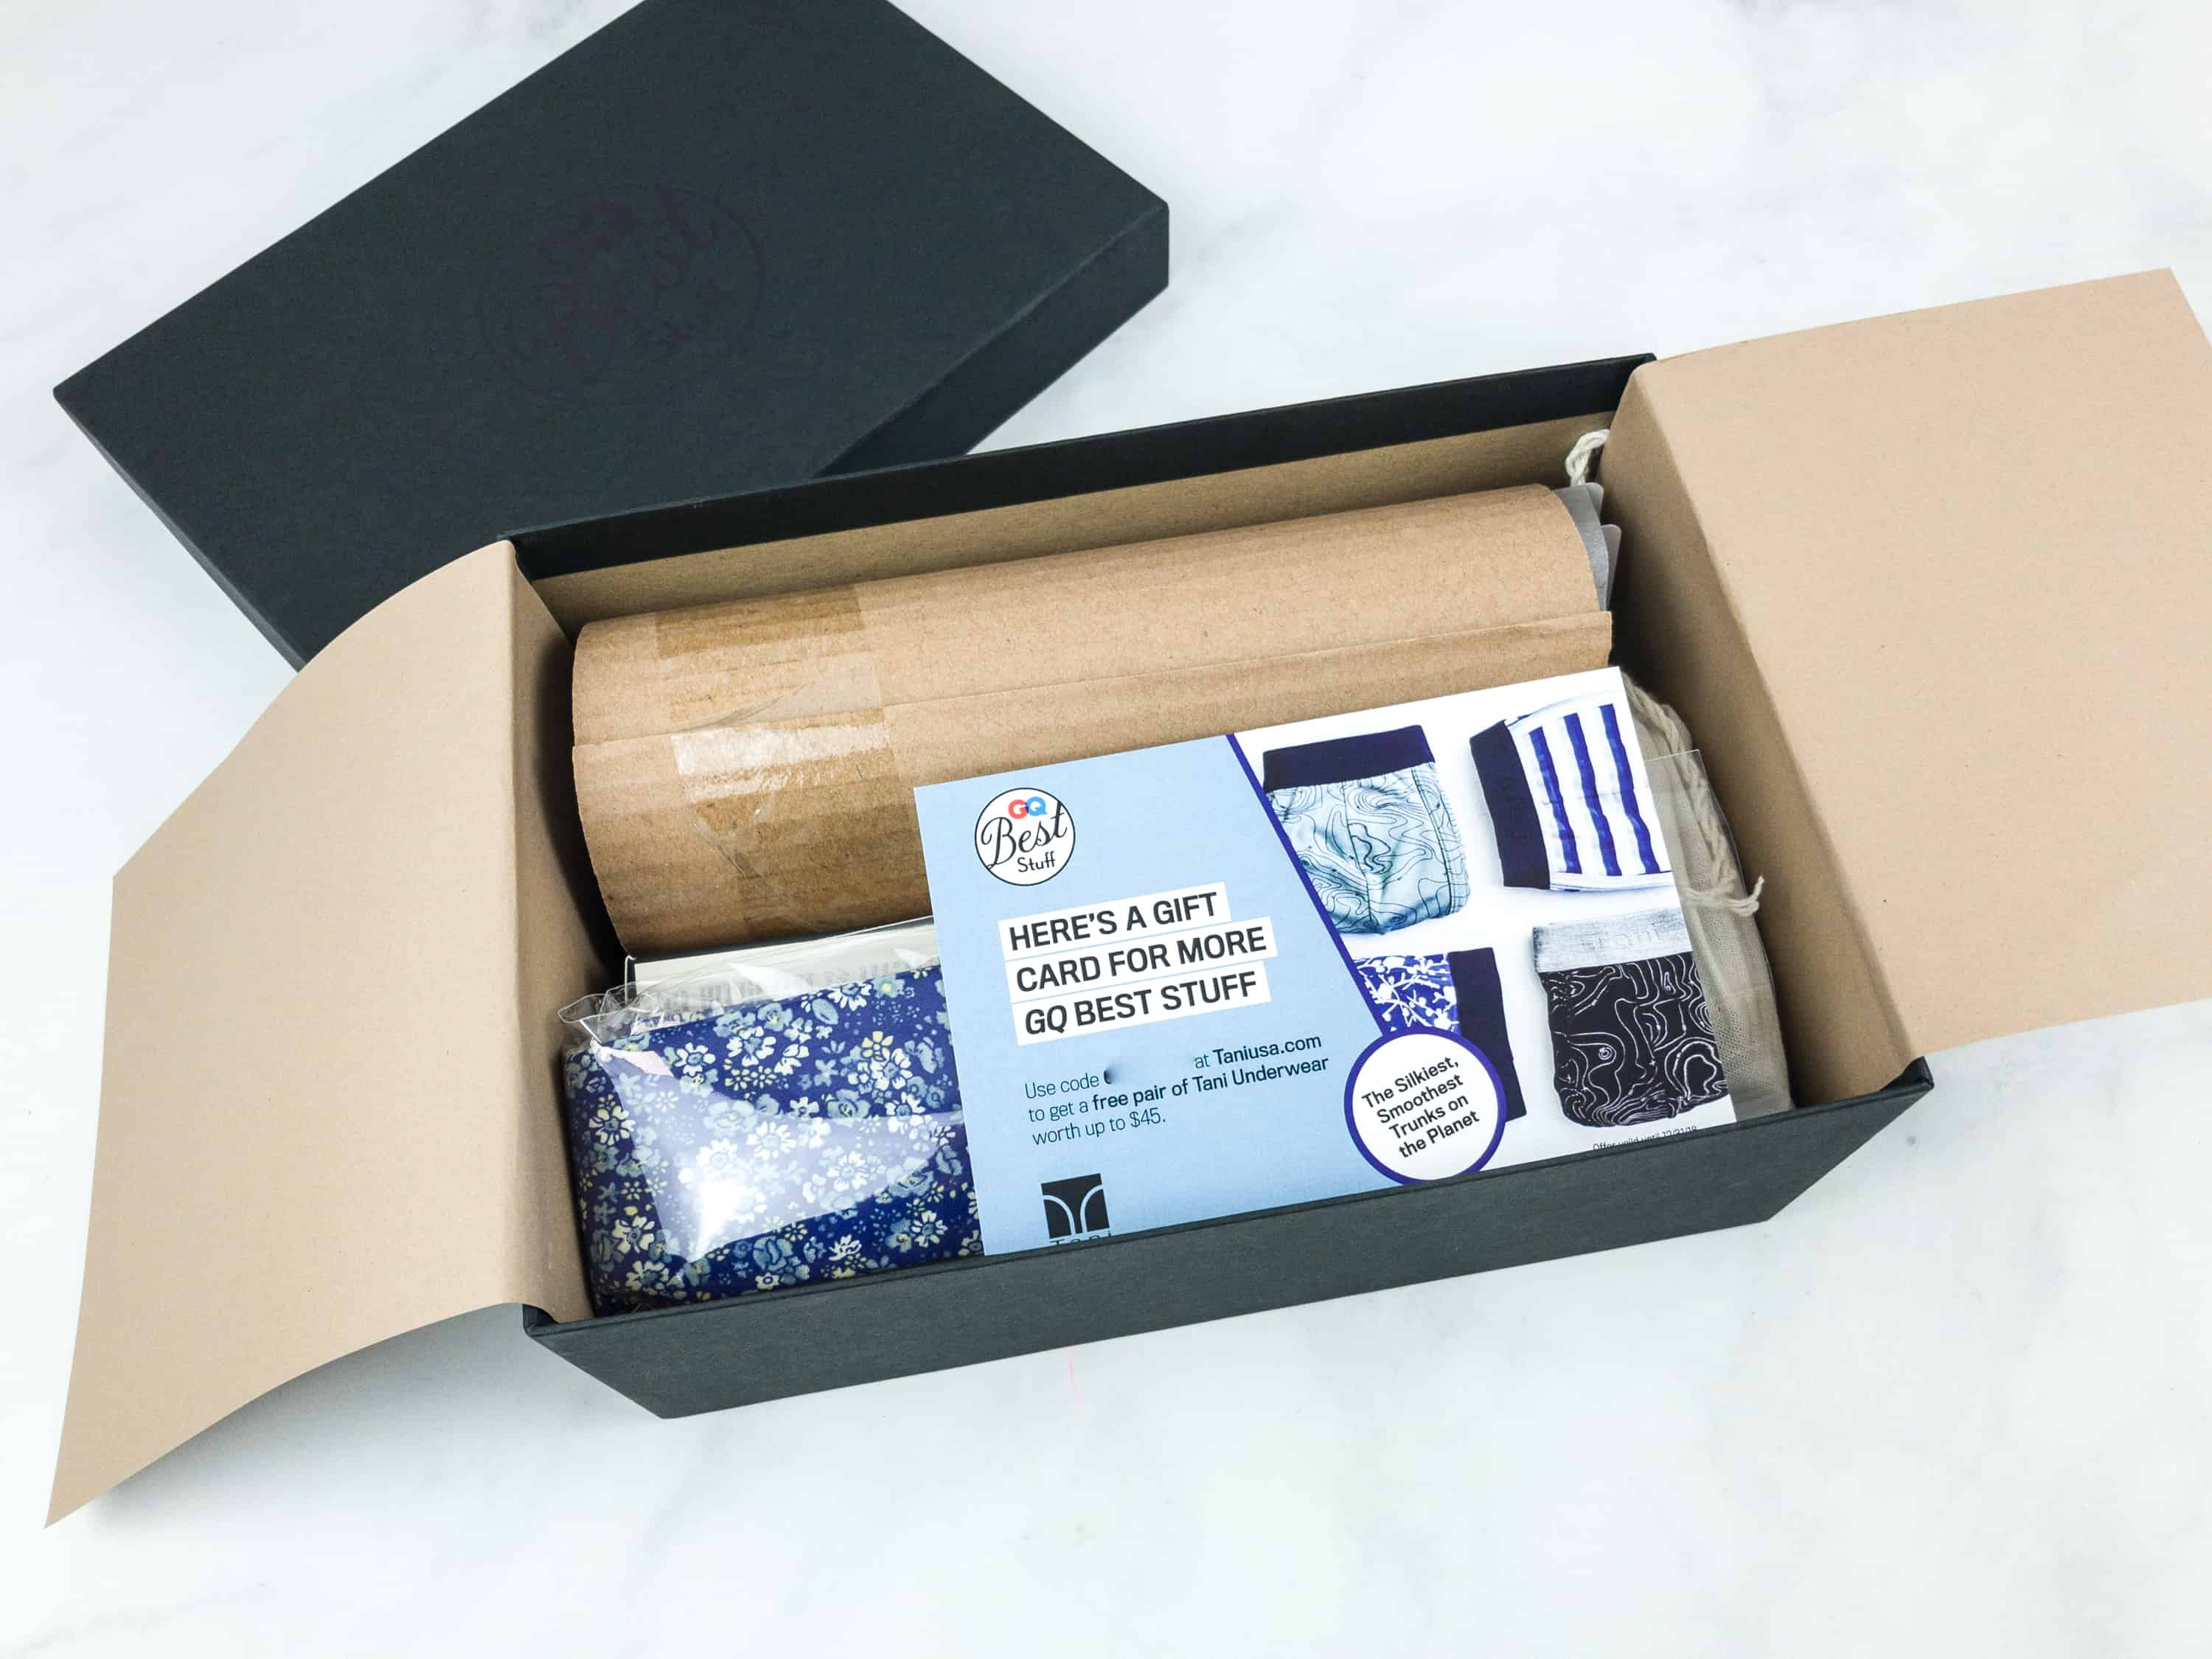 All the items are neatly placed inside the box, most being included in their full original packaging.